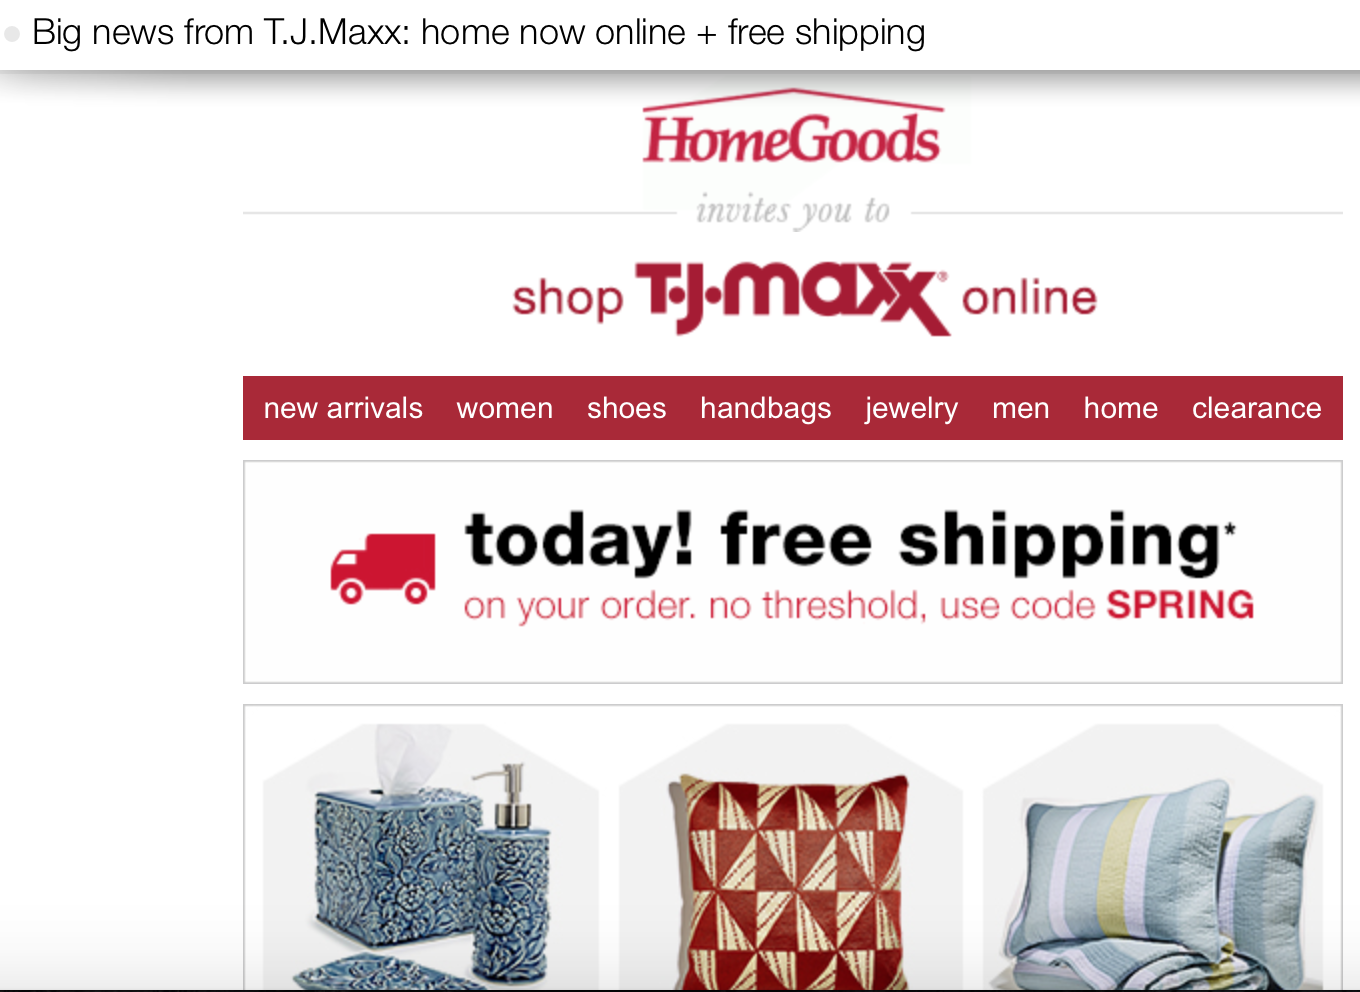 HomeGoods website is LIVE. Attention Shoppers  Home Goods launches Online Shopping  Thx TJXX